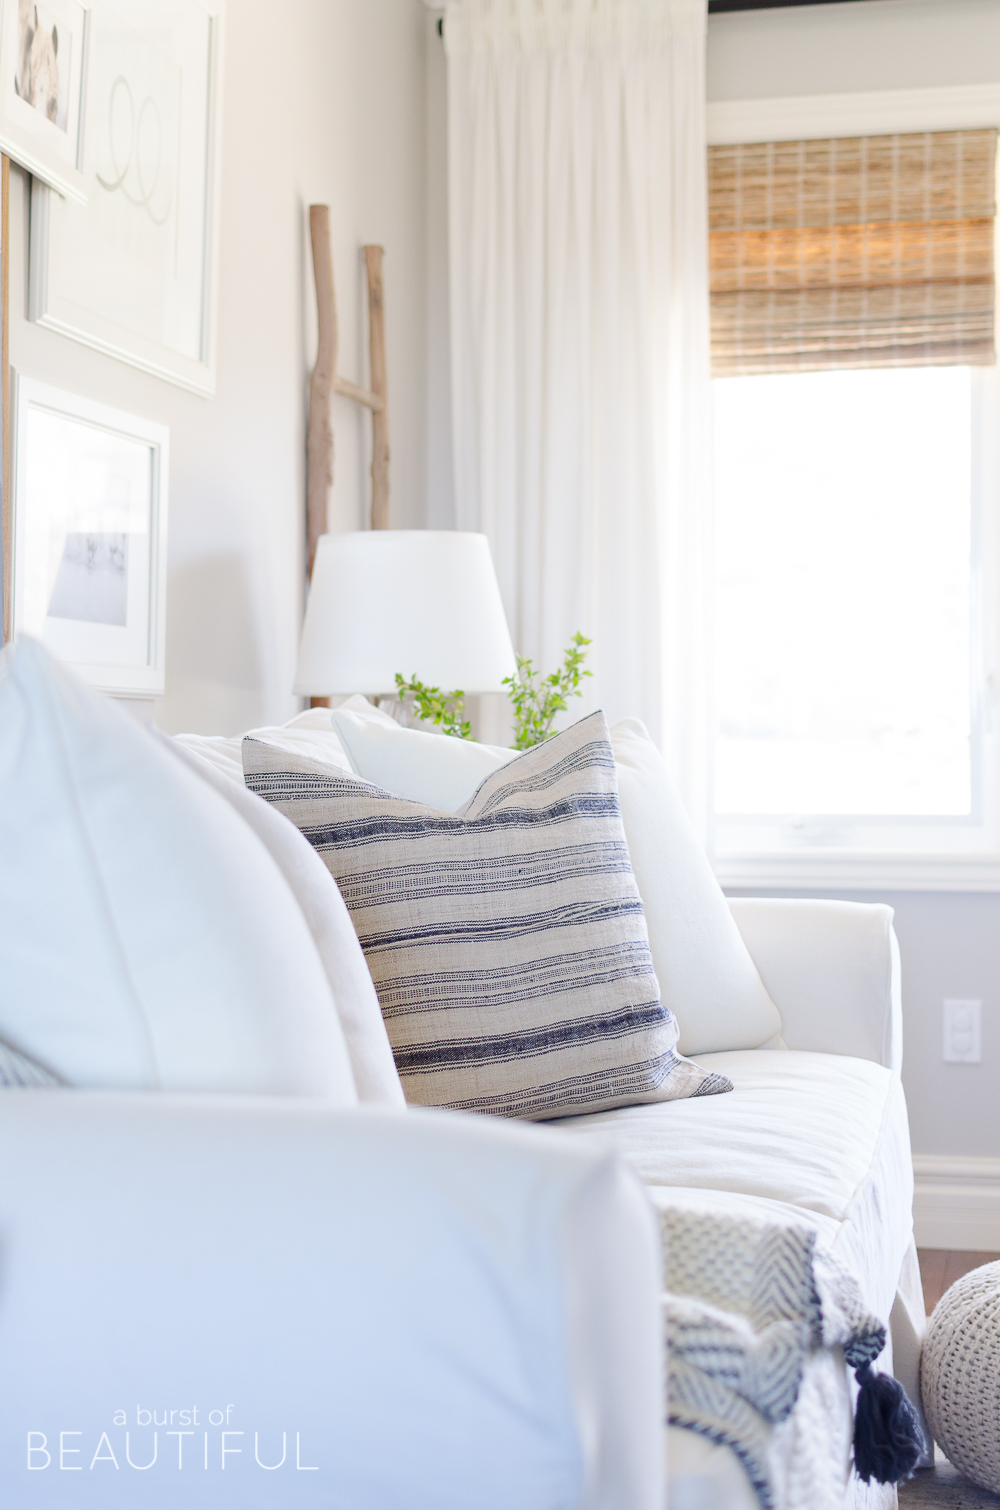 The easiest way to update your space is by adding new art and accessories, like throw pillows.